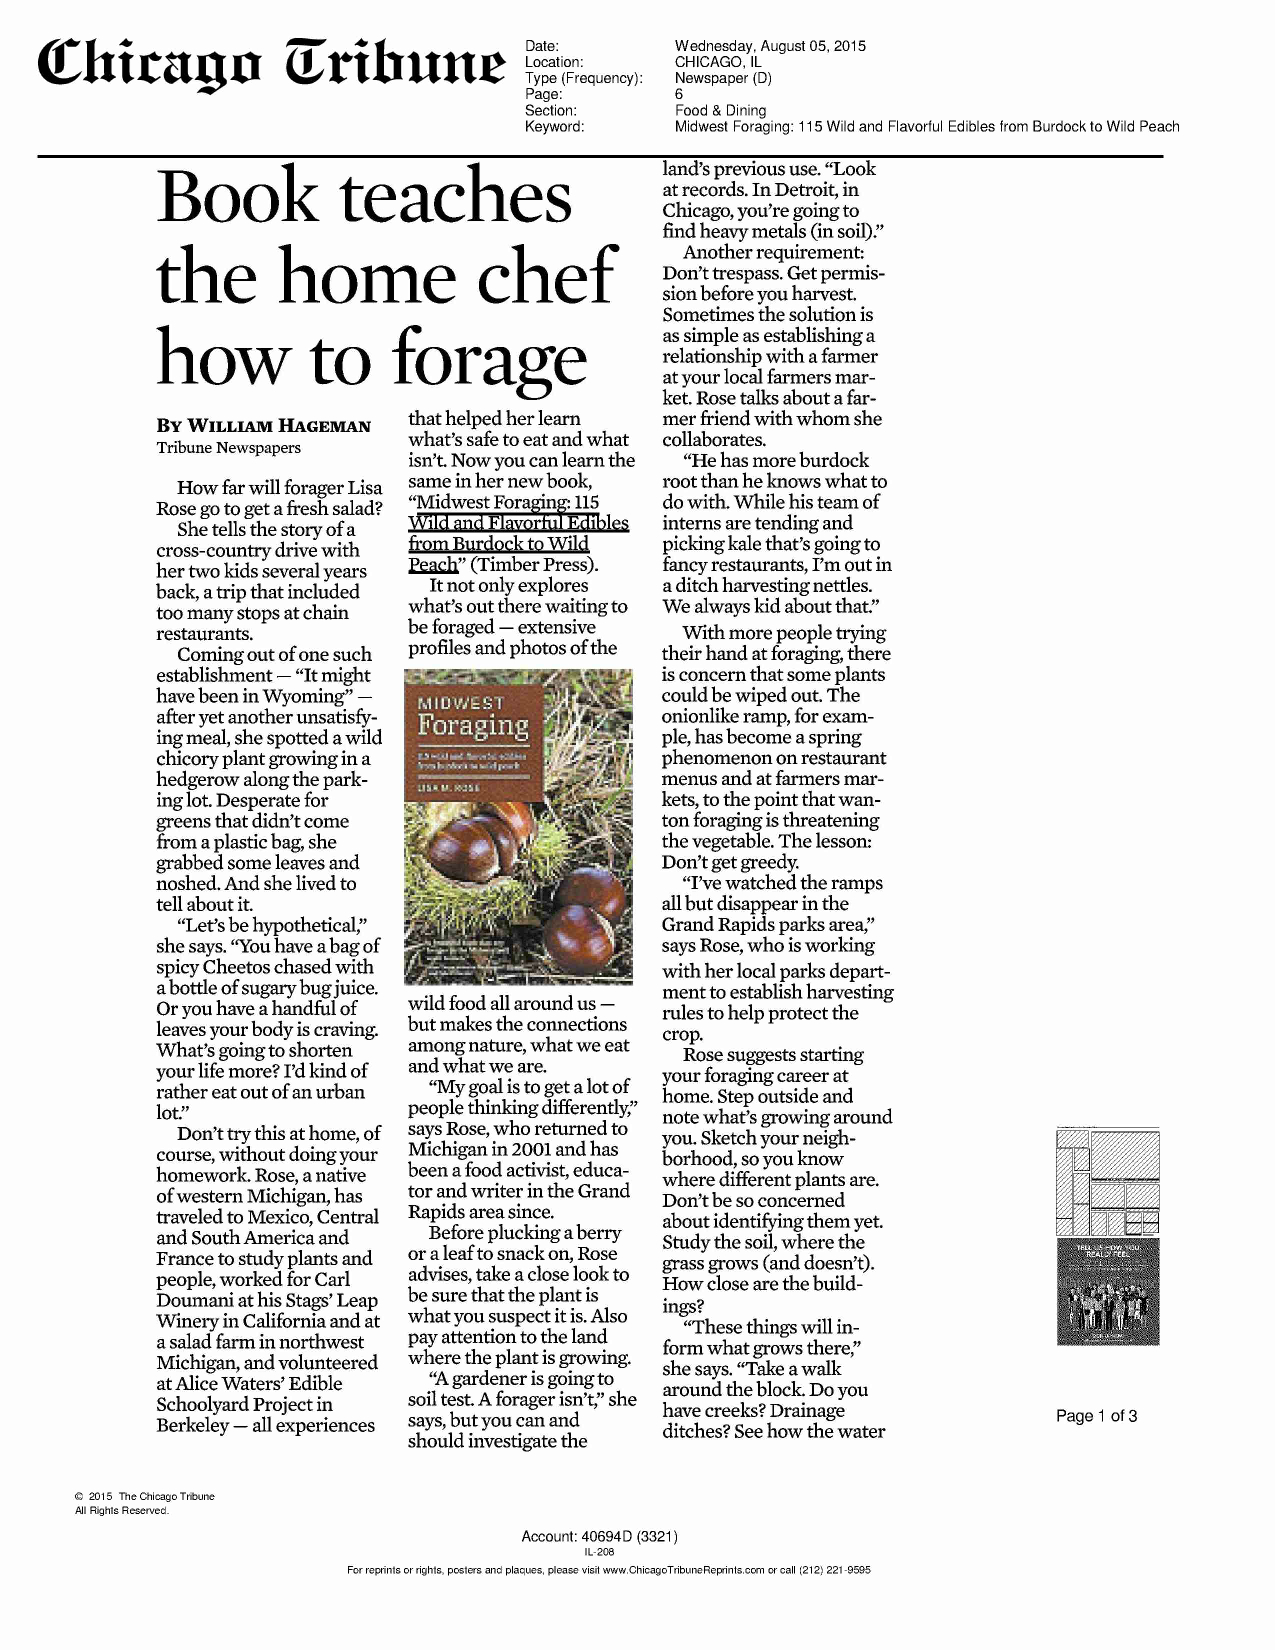 Midwest Foraging Featured In Chicago Tribune Burdock